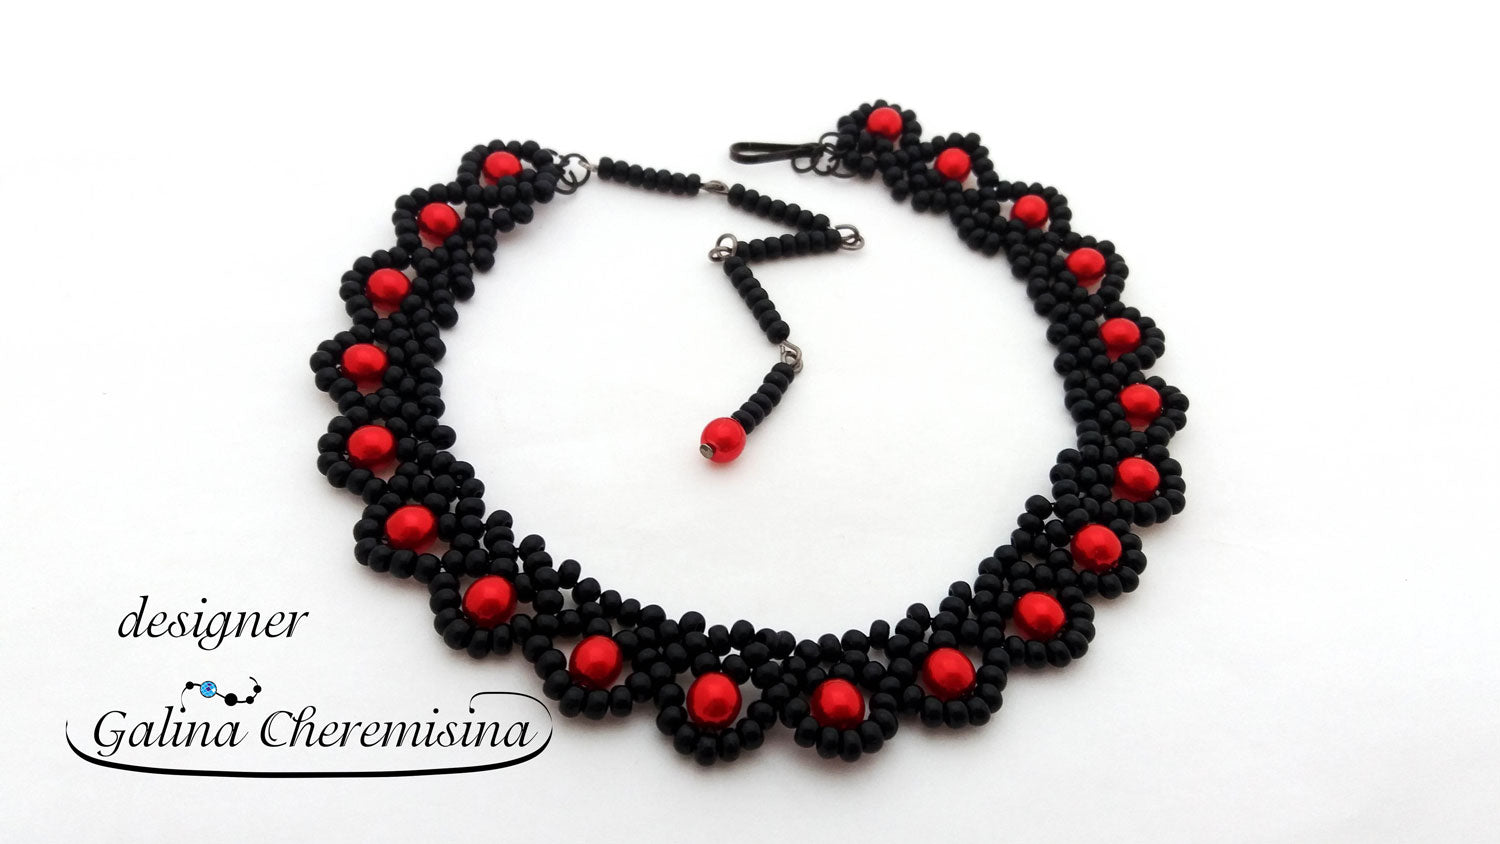 DIY: Beadwork Basics: Base for necklace with czech glass seed beads